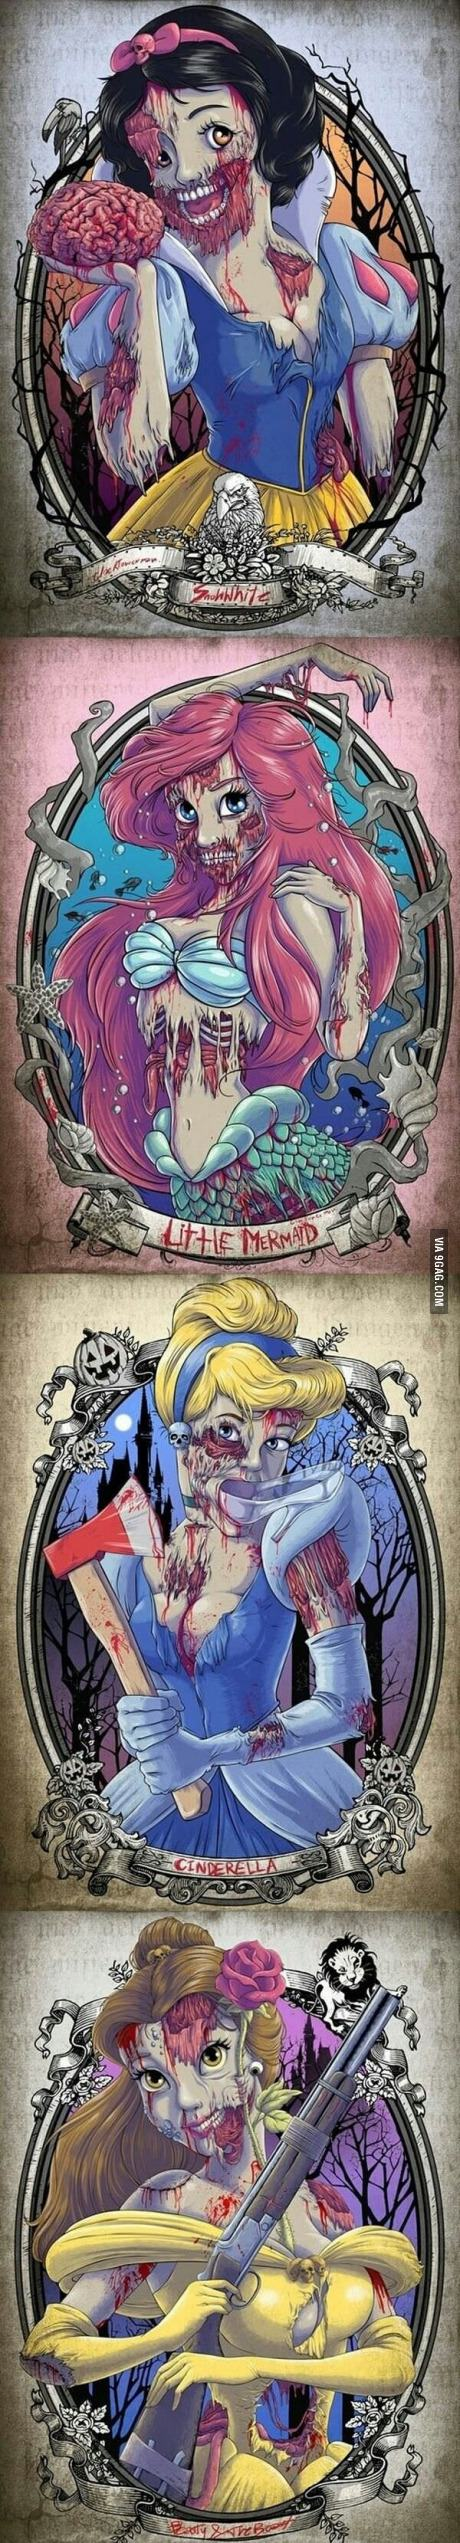 Disney Princesses if they were drawn as zombies, may make some movies more interesting